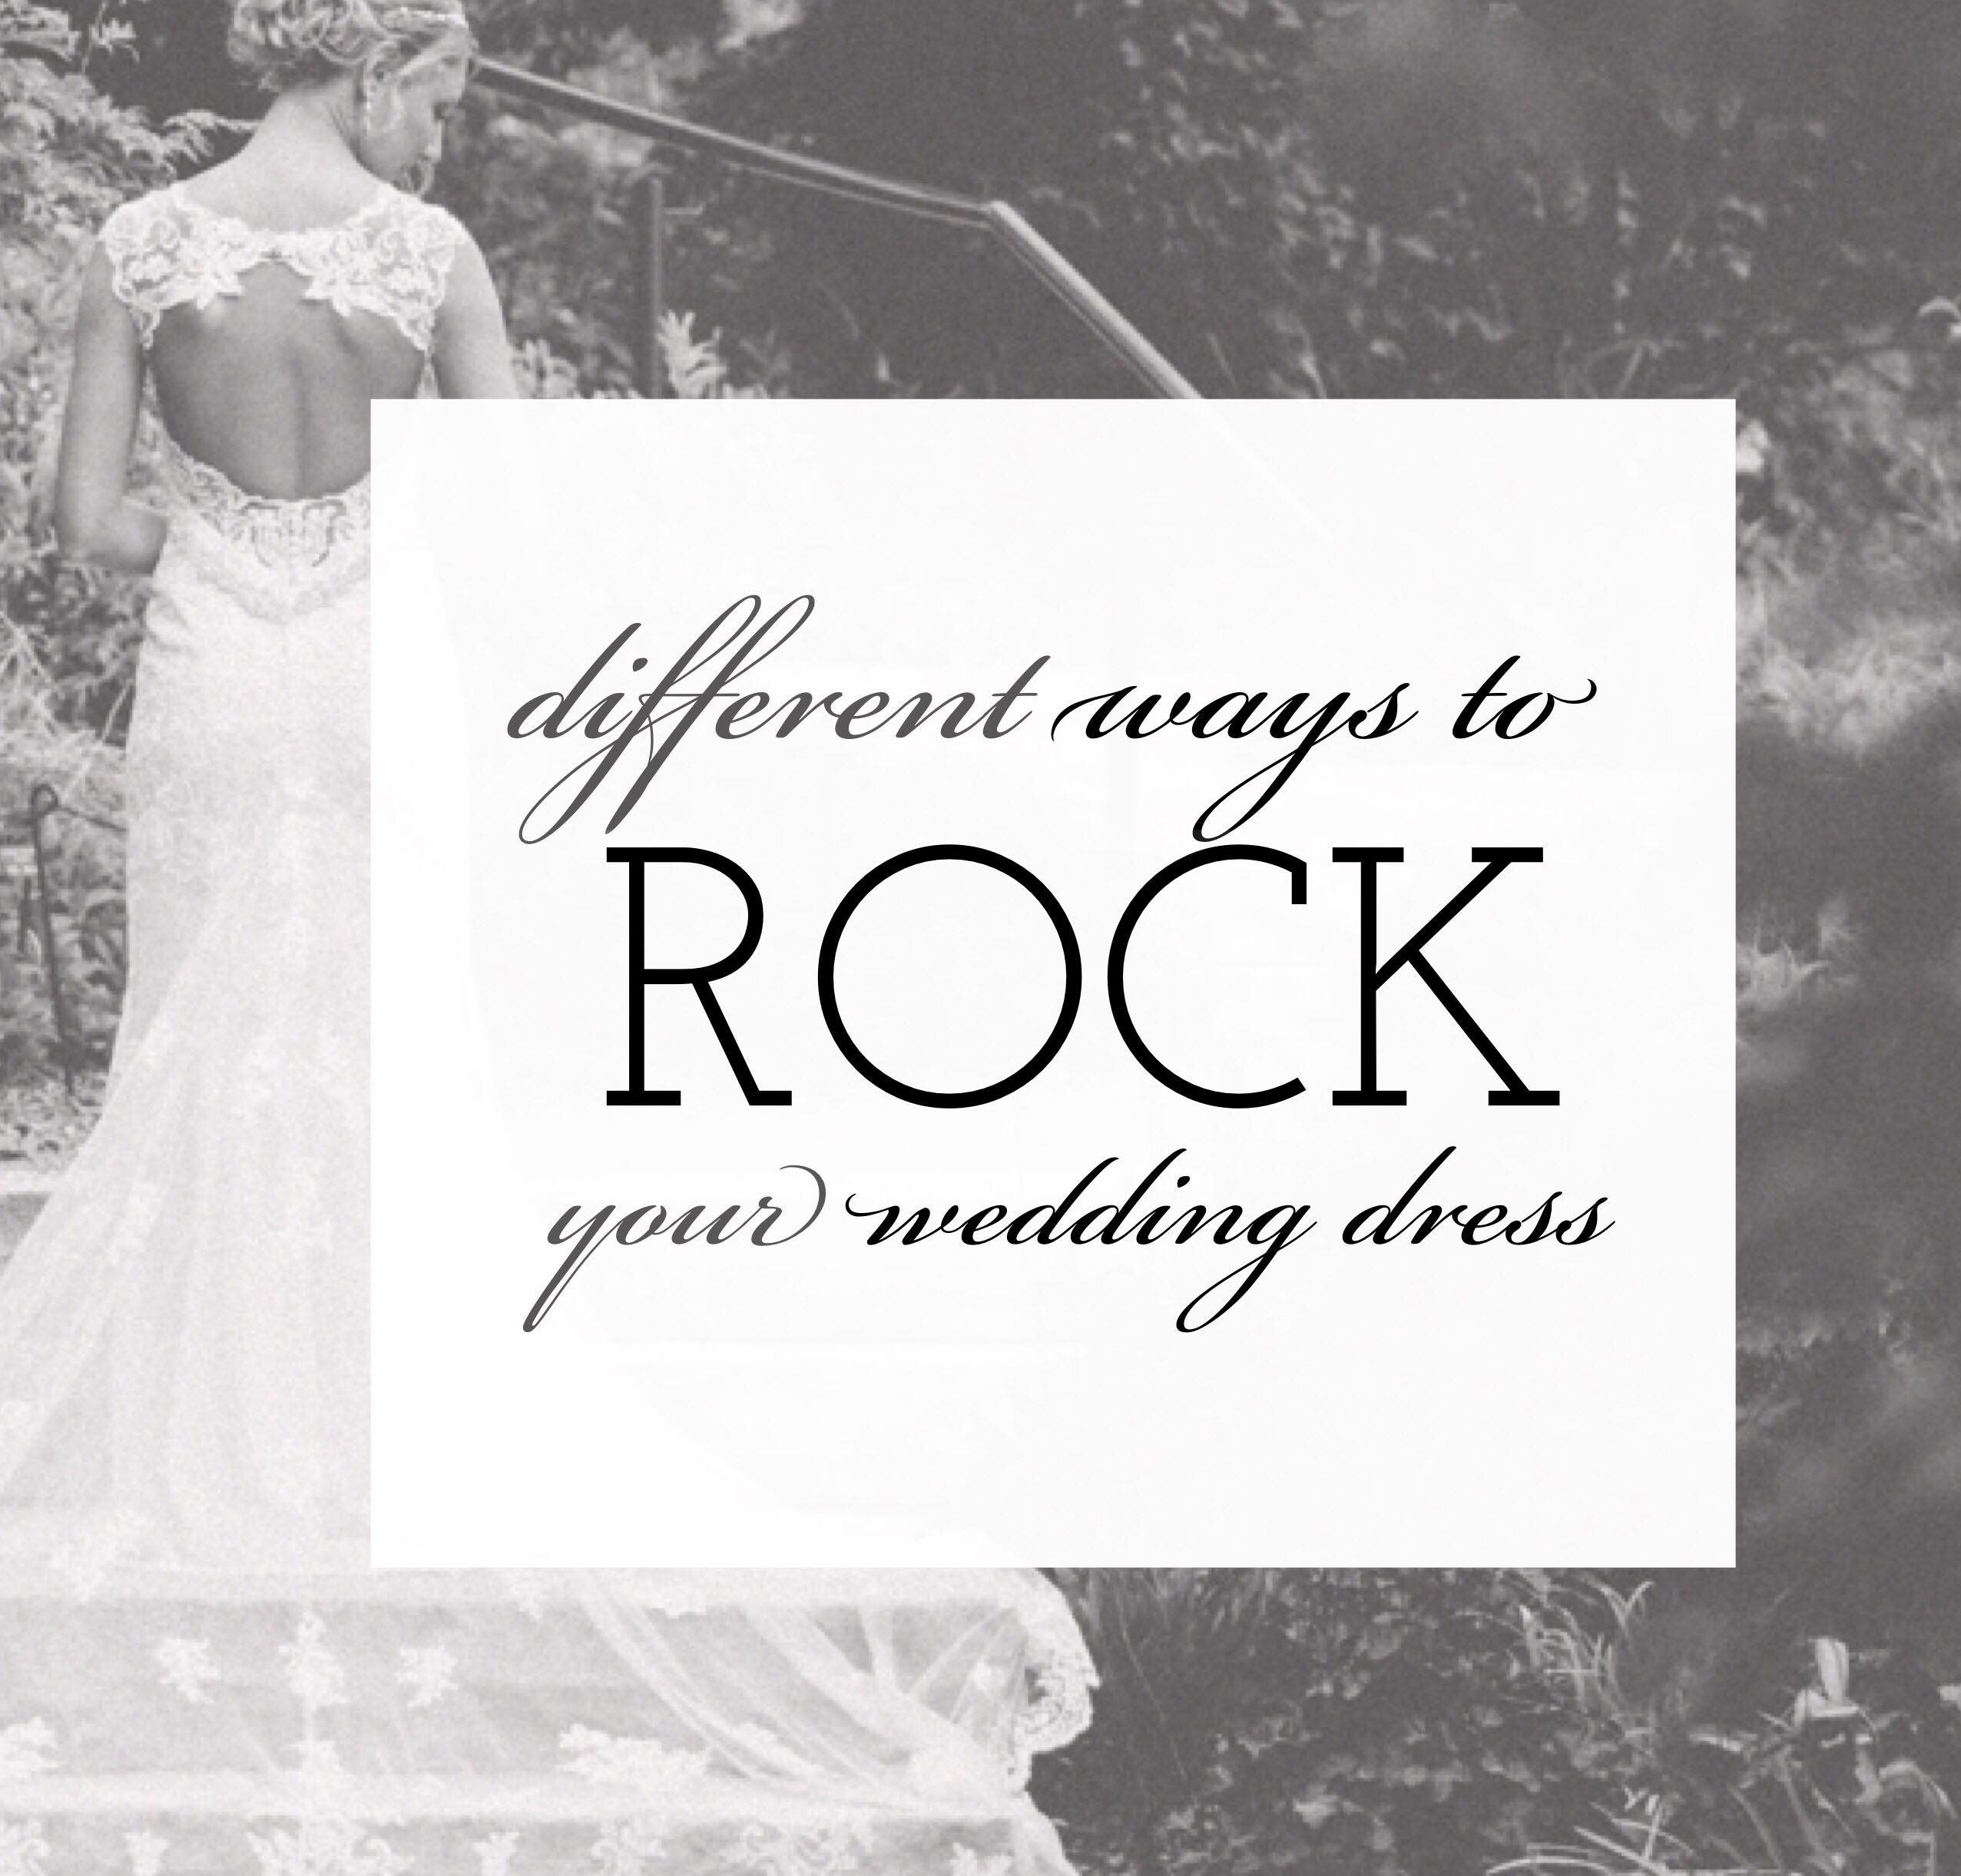 73d313 763d0dd8105d45e9b60f199089b1fec7mv2 d 2553 2442 s 4 2 - Different ways to Rock your Wedding Dress